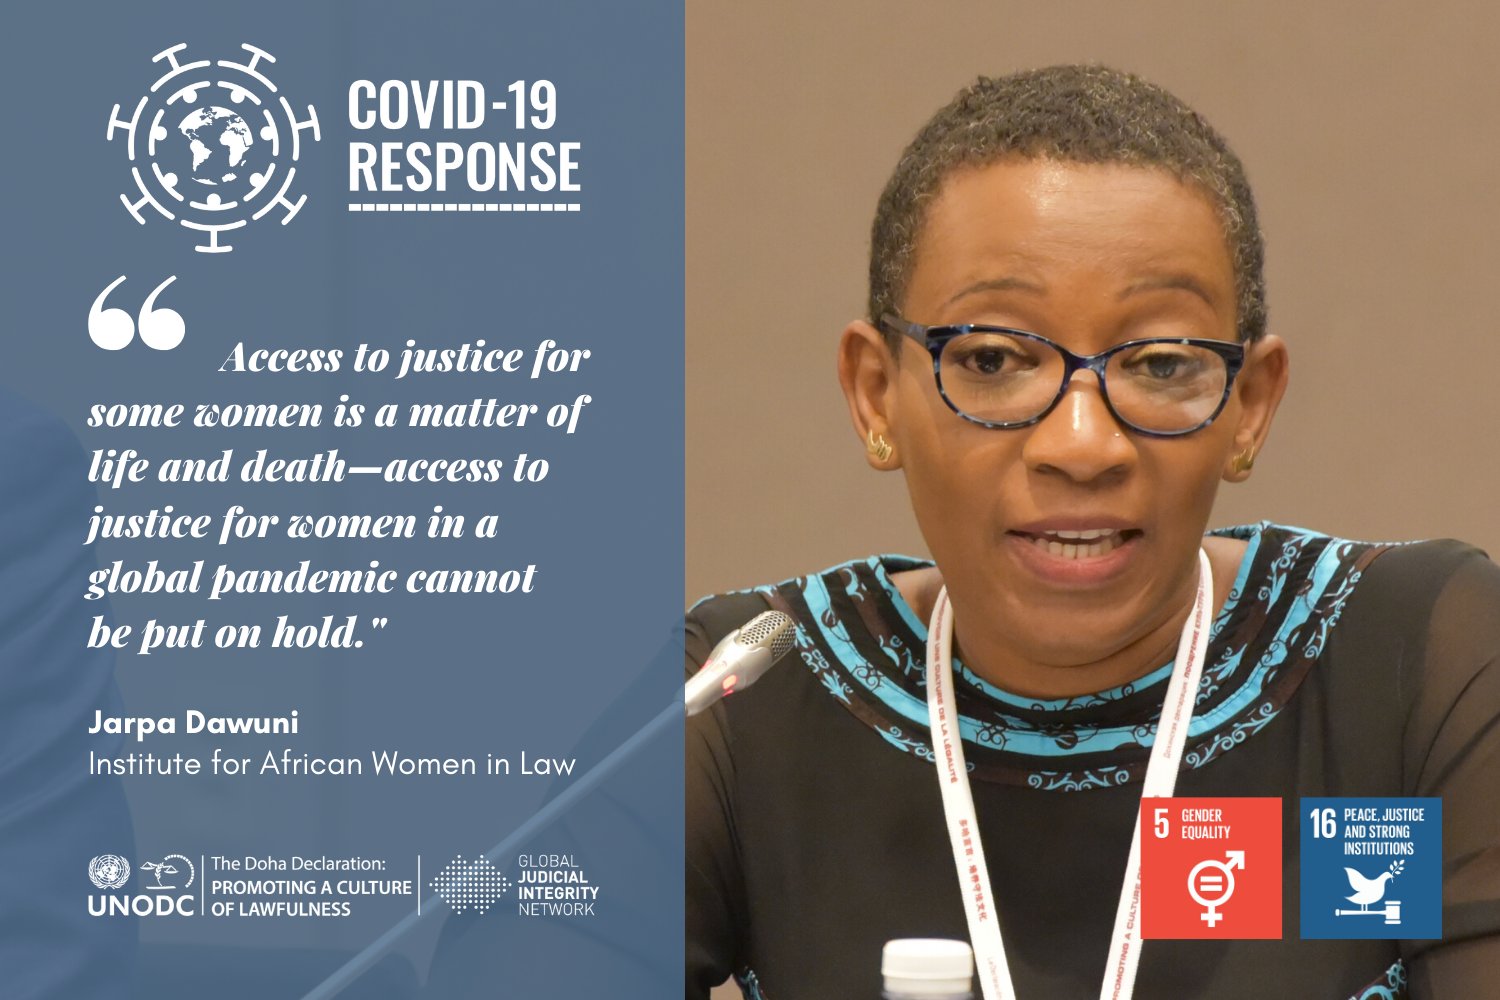 The Gendered Face of COVID-19: Women and Access to Justice